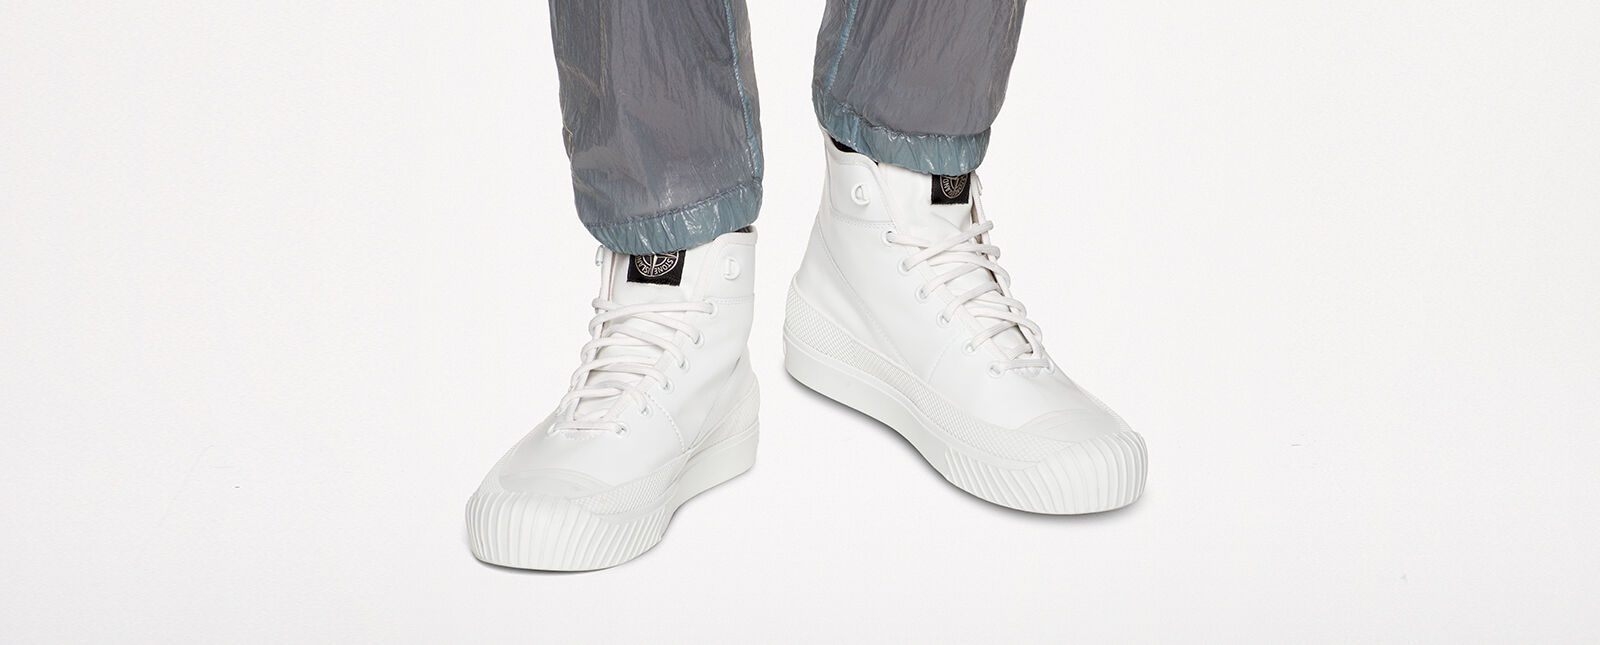 Close-up of model wearing white high-top laced sneakers with the Stone Island badge on the tongue.